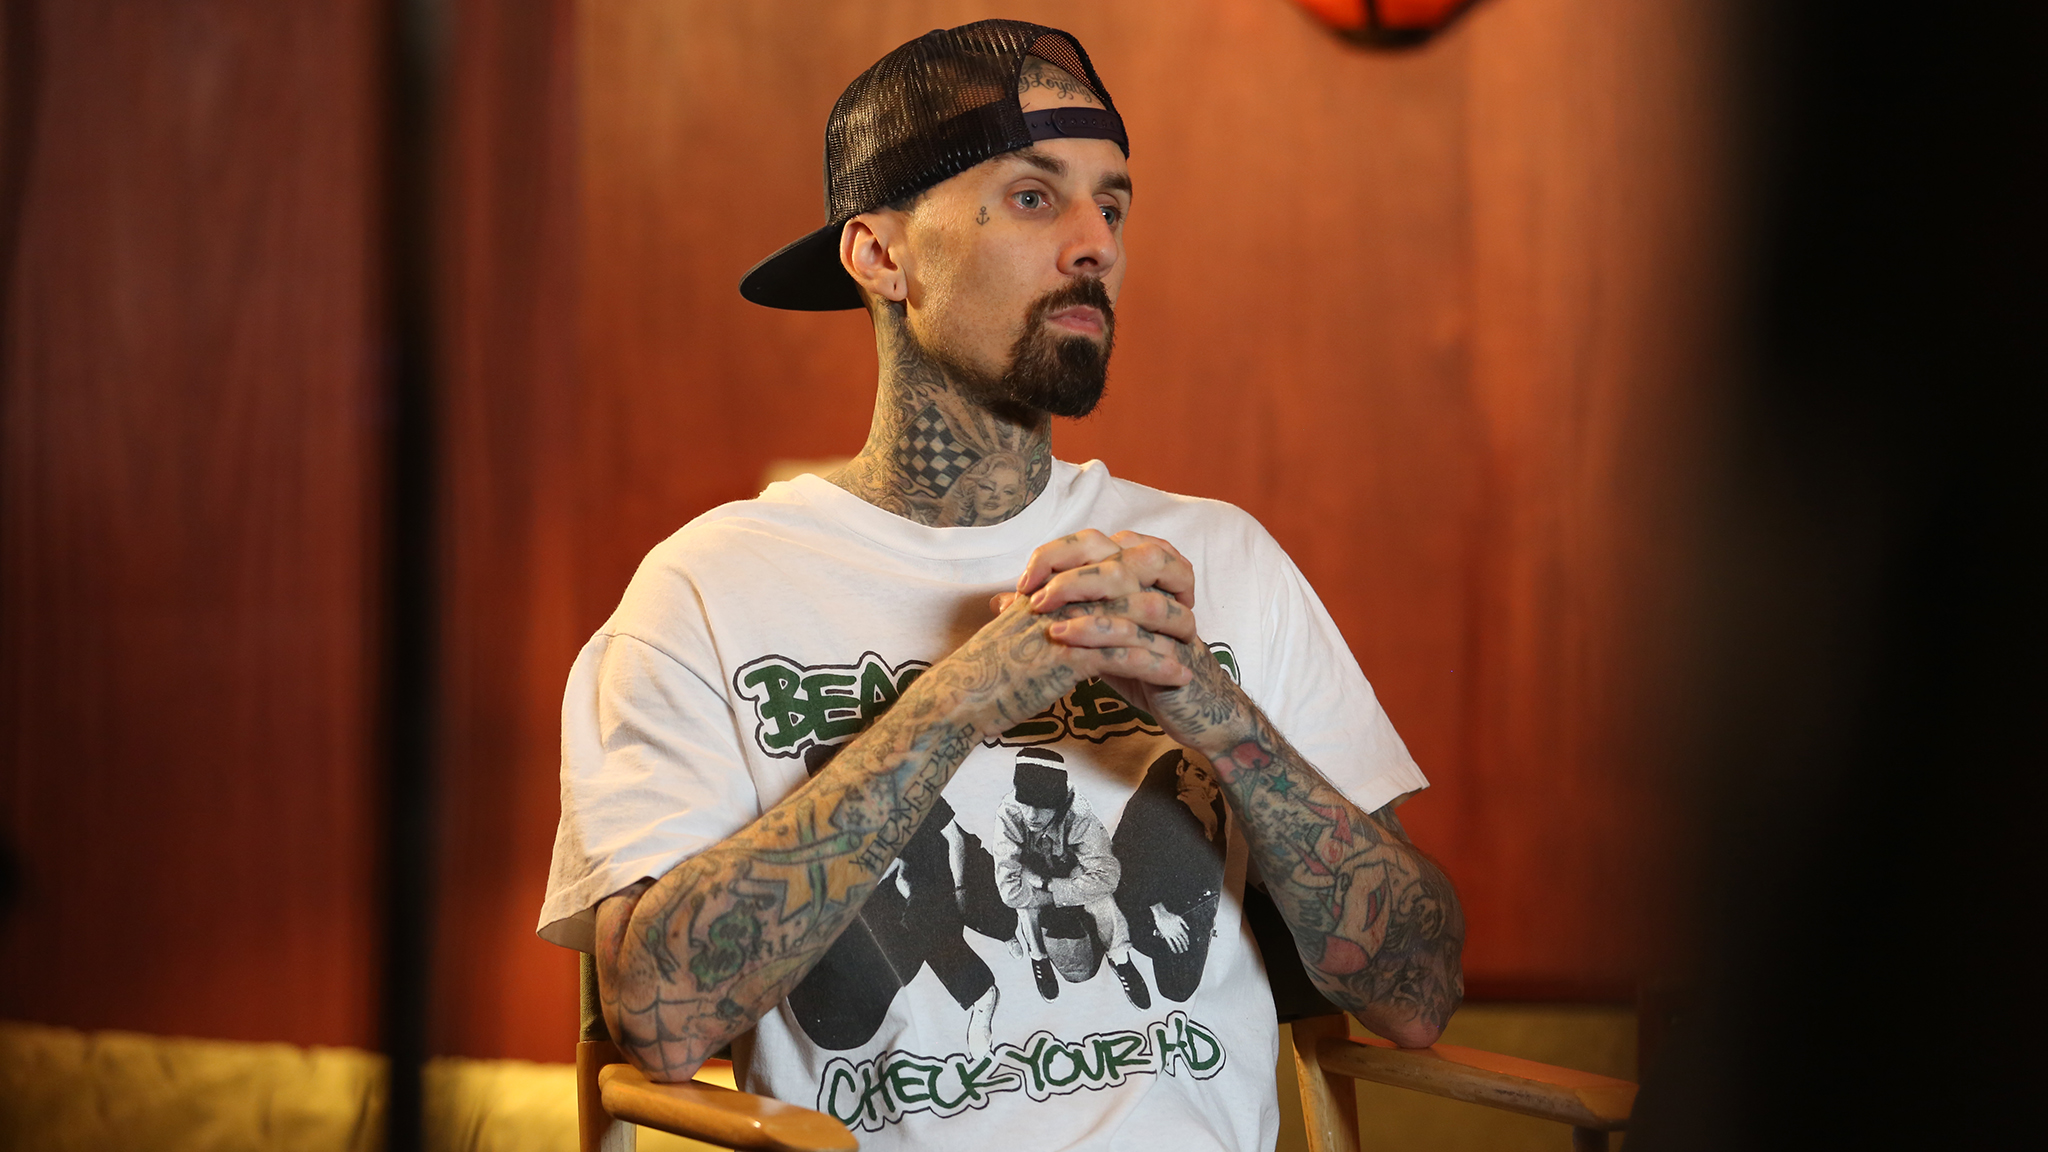 Introducing Travis Barker